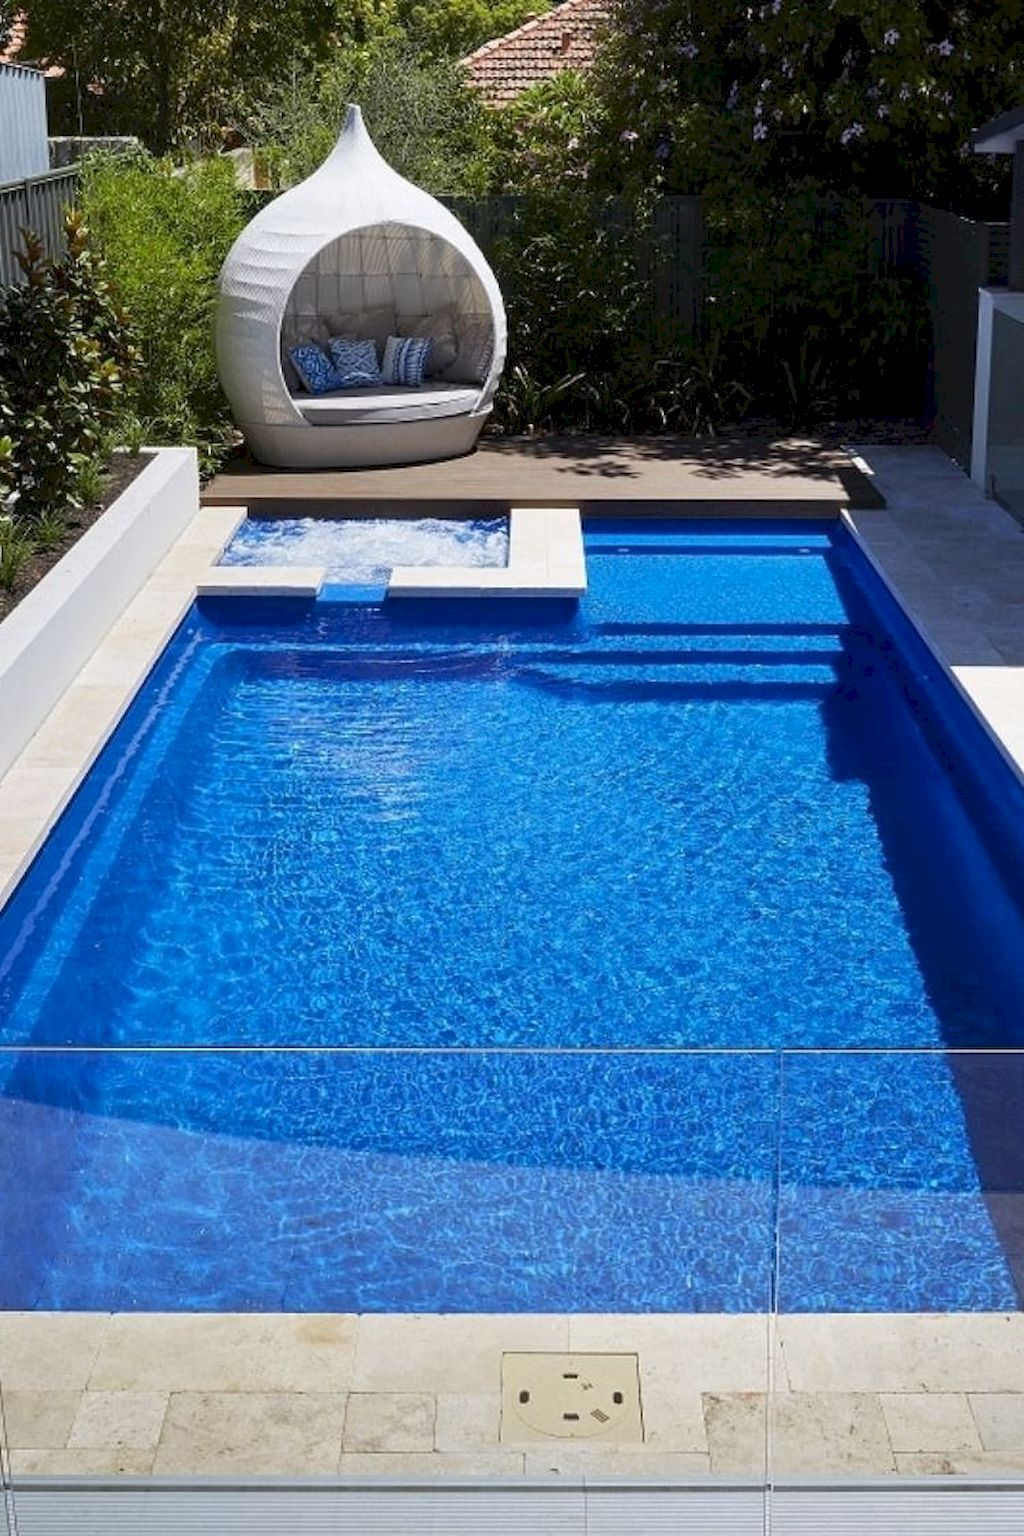 Brilliant Swimming Pool Designs For Most Enjoyable And Enjoyment Small Pool Design Small Backyard Pools Swimming Pools Backyard